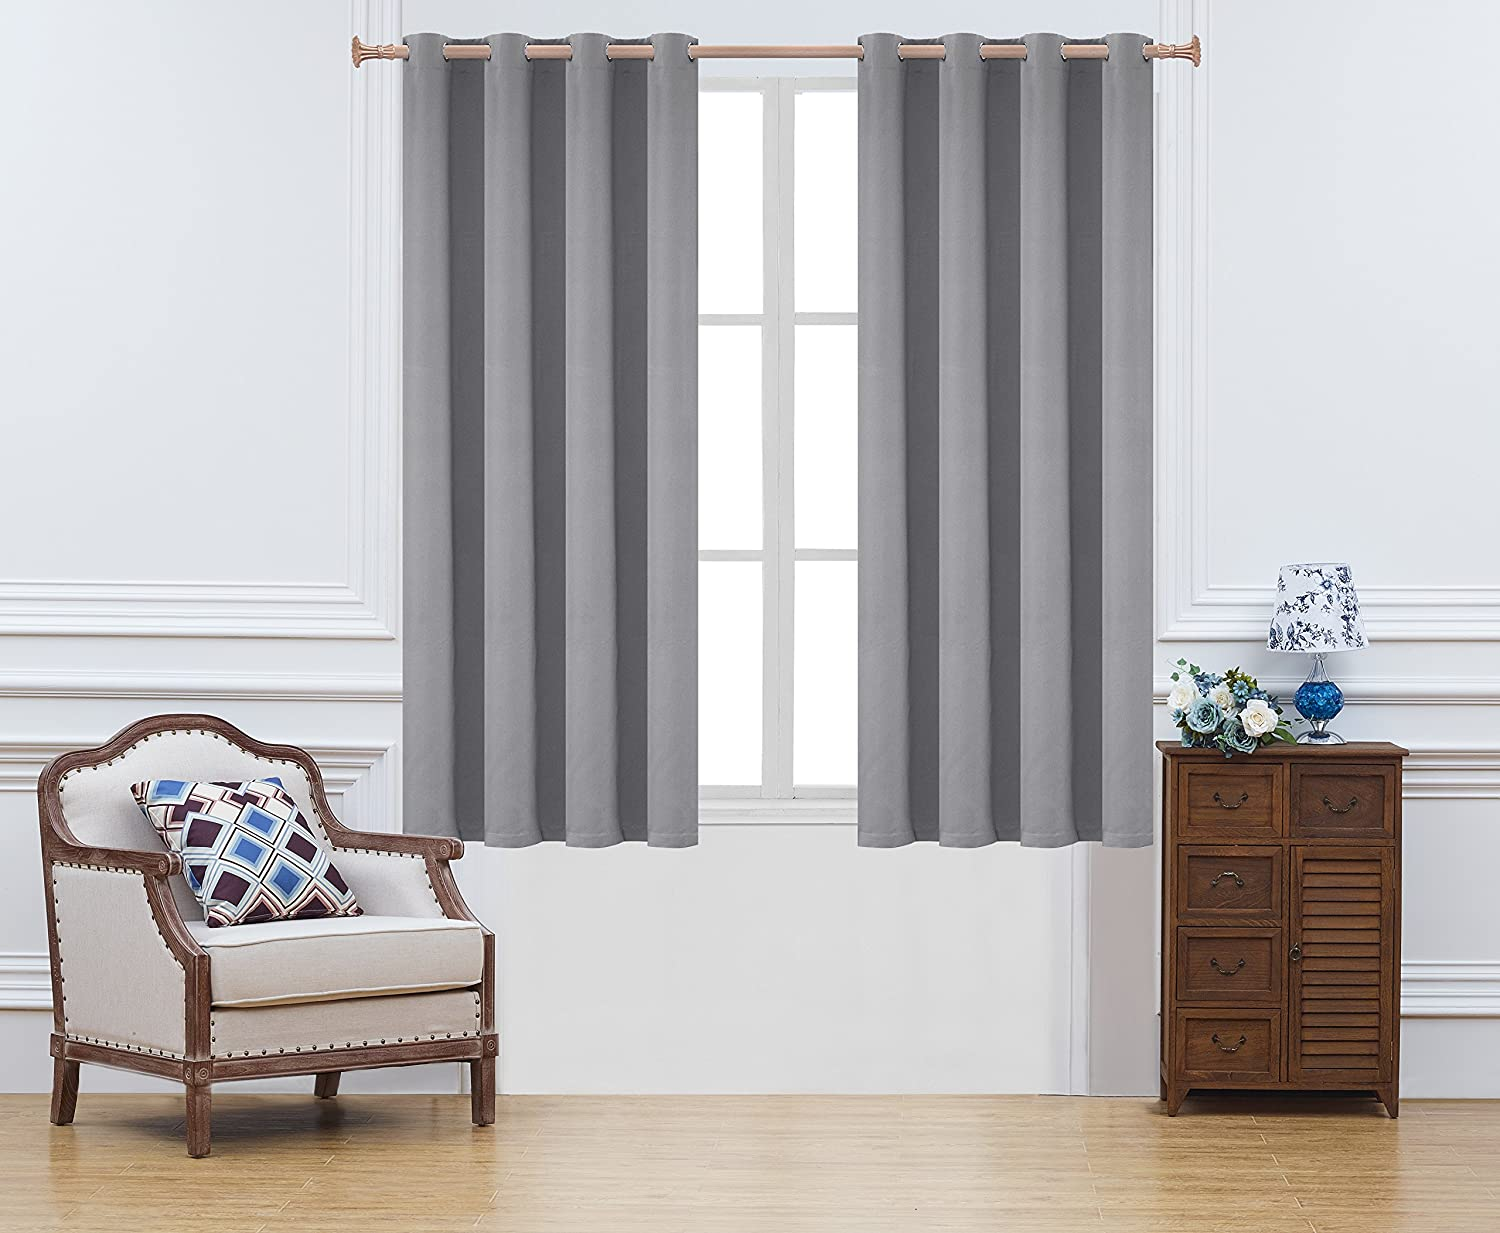 Onlyyou Window Grommet Thermal Blackout Curtain Drape Panel for Kids Bedroom Grey